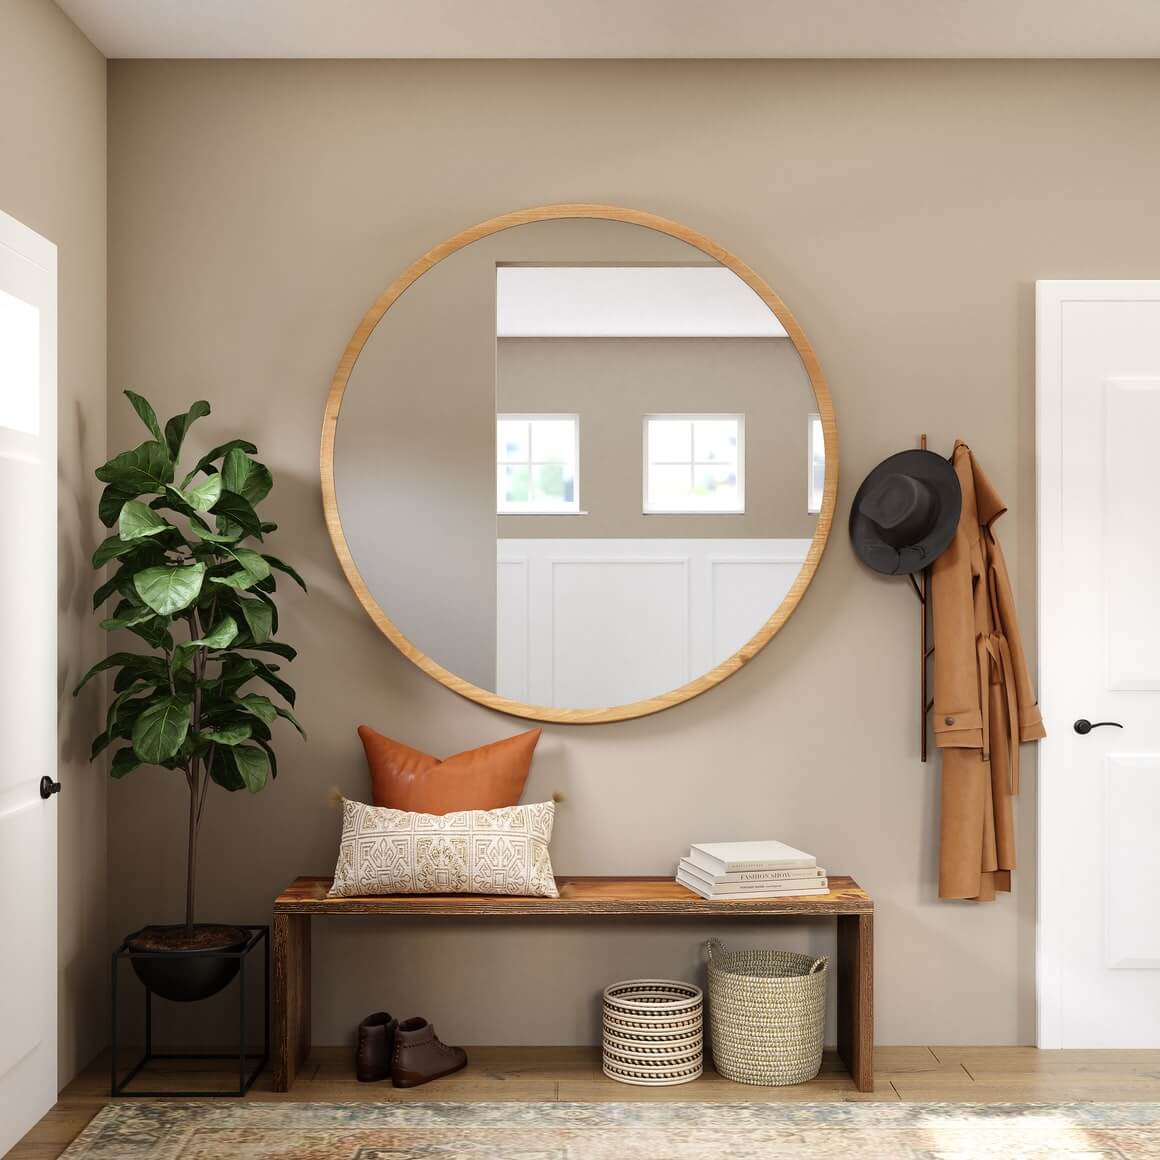 How To Reimagine And Decorate Small Spaces